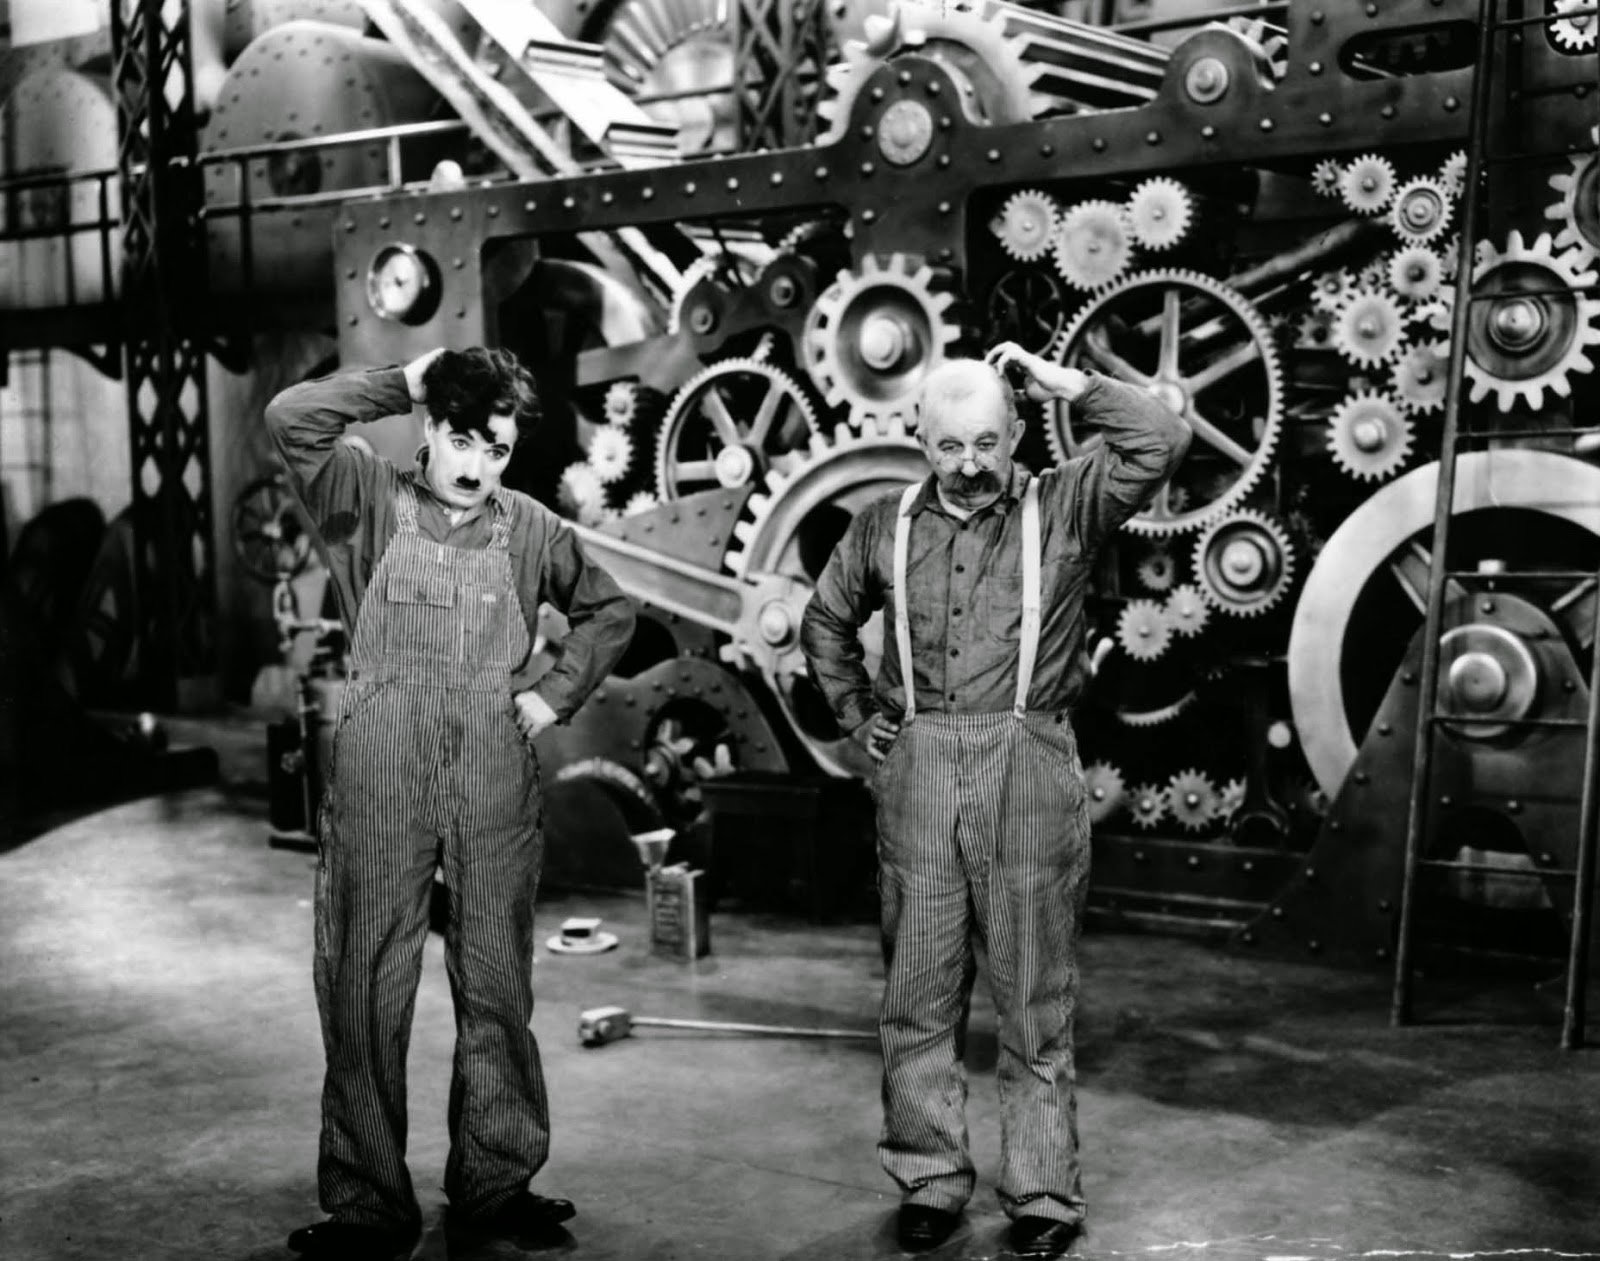 an analysis of the treatment of men in corporations in the film modern times by charlie chaplin Charlie chaplin remains one of the most beloved to hurry and send more chaplin film was the theme song chaplin wrote for modern times.